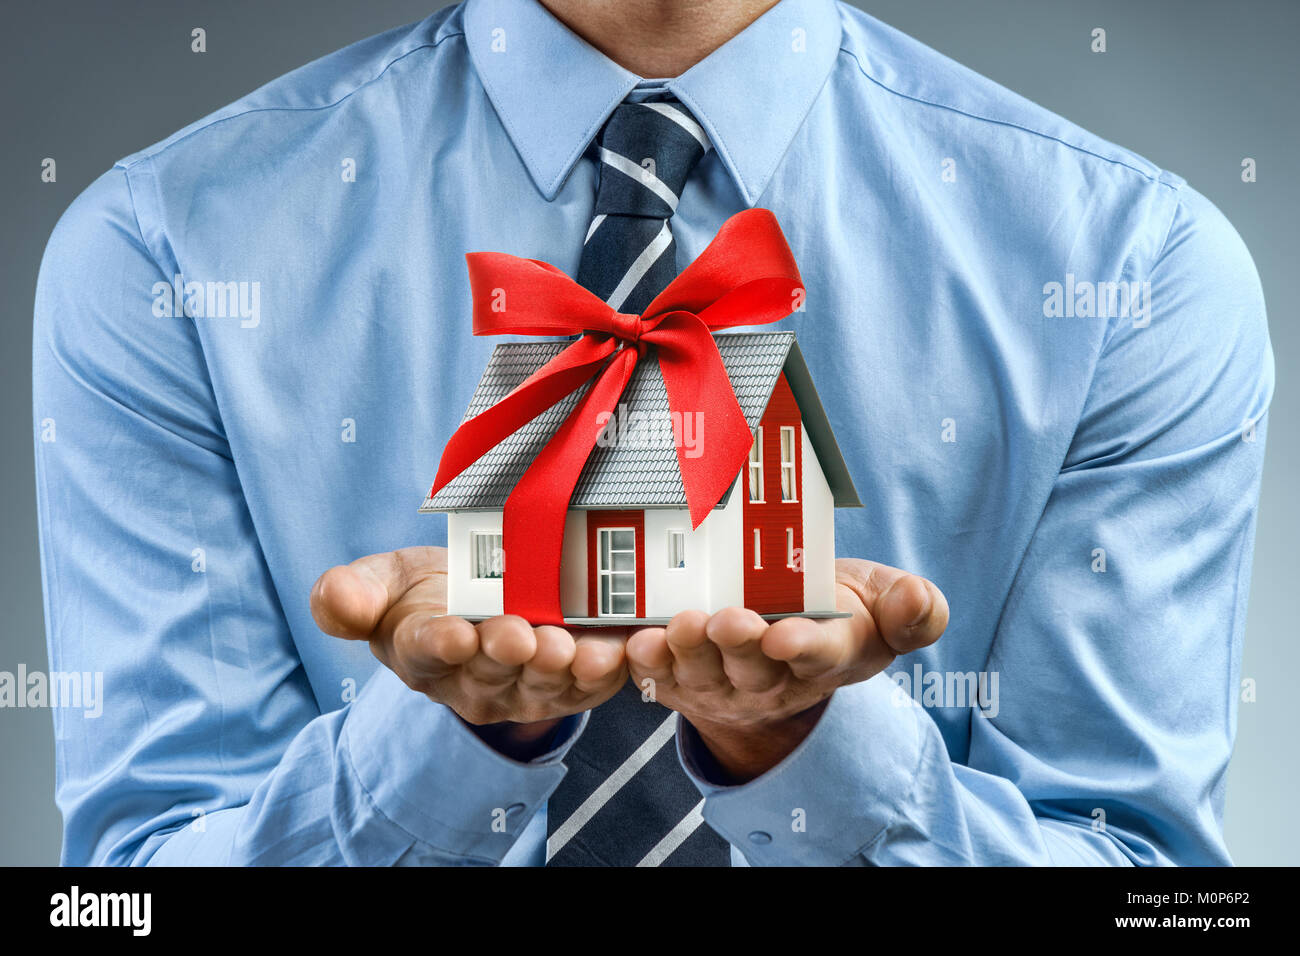 Worker in blue shirt holding house with red ribbon. Close up. Business concept - Stock Image